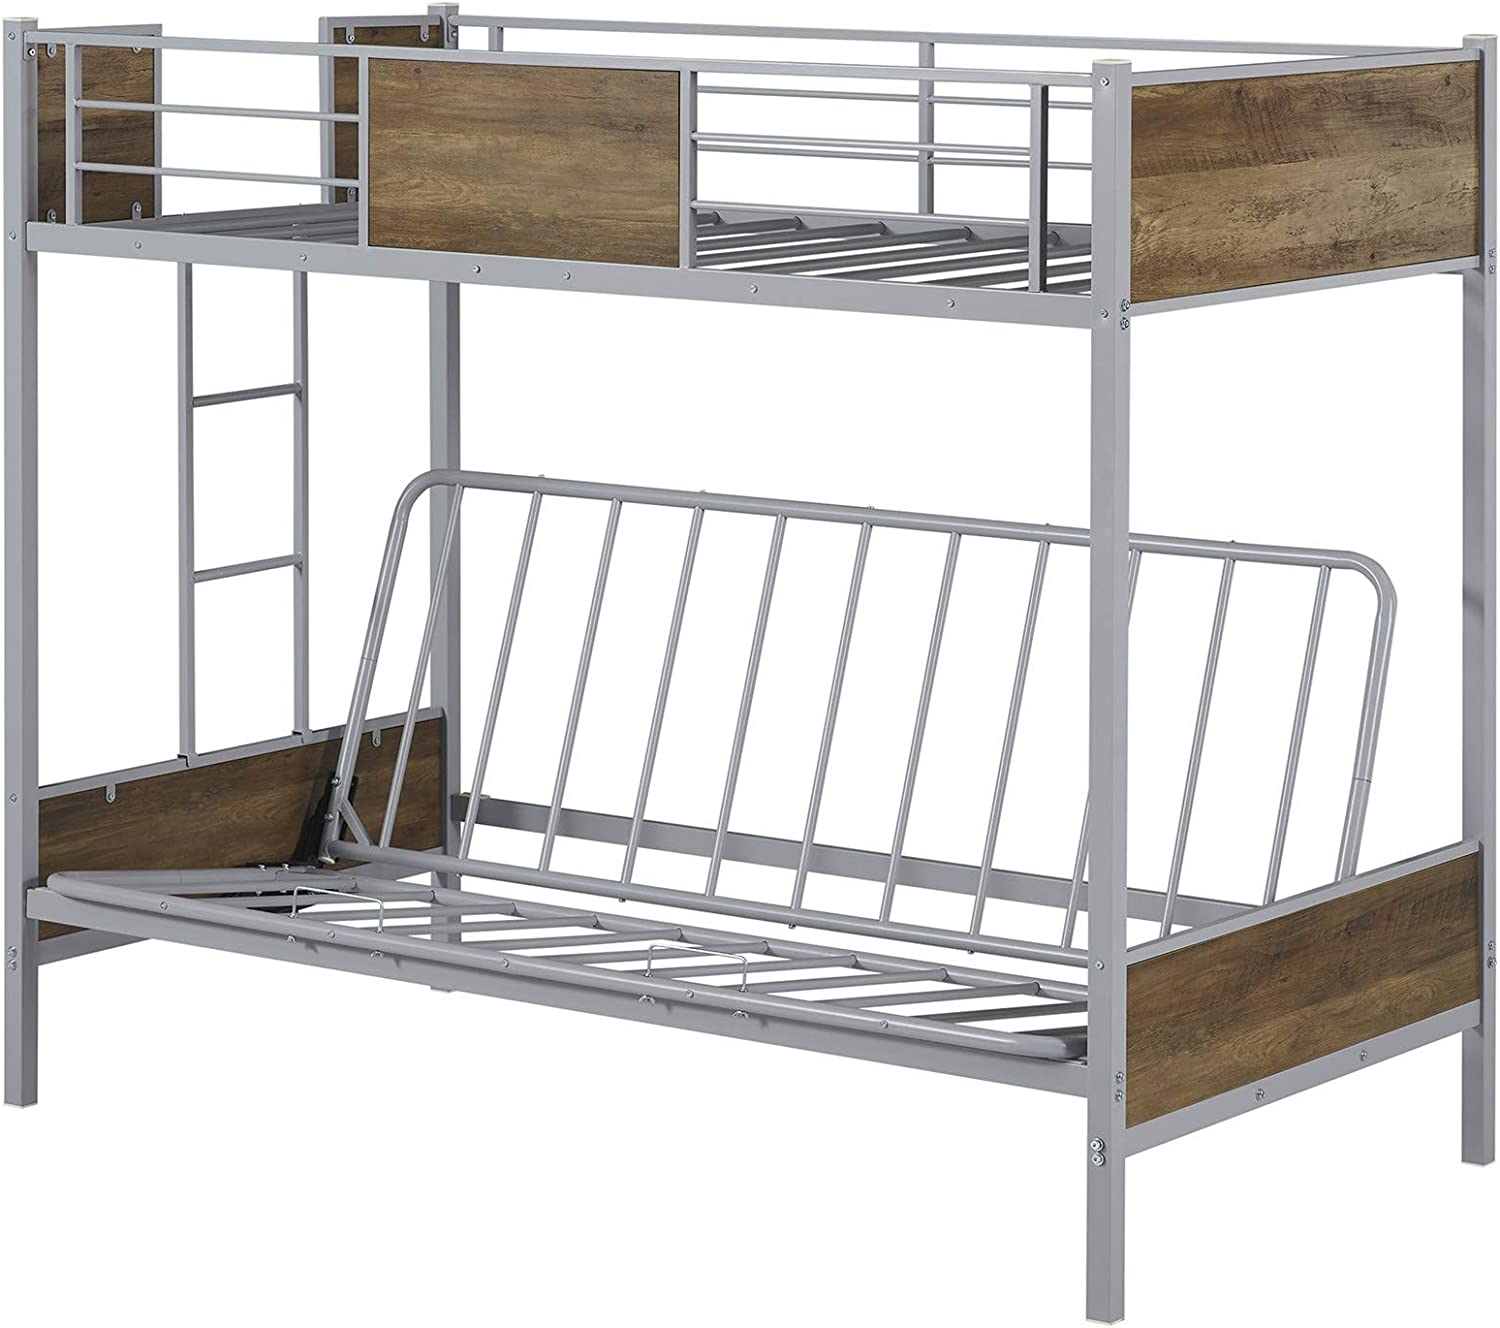 Buy Bunk Bed With Futon Twin Over Futon Bunk Bed Easy Conversion To Twin Over Full Bunk Beds Metal Futon Bunk Bed With Guardrails And Ladder Silver Online In Turkey B08wwmxyjc